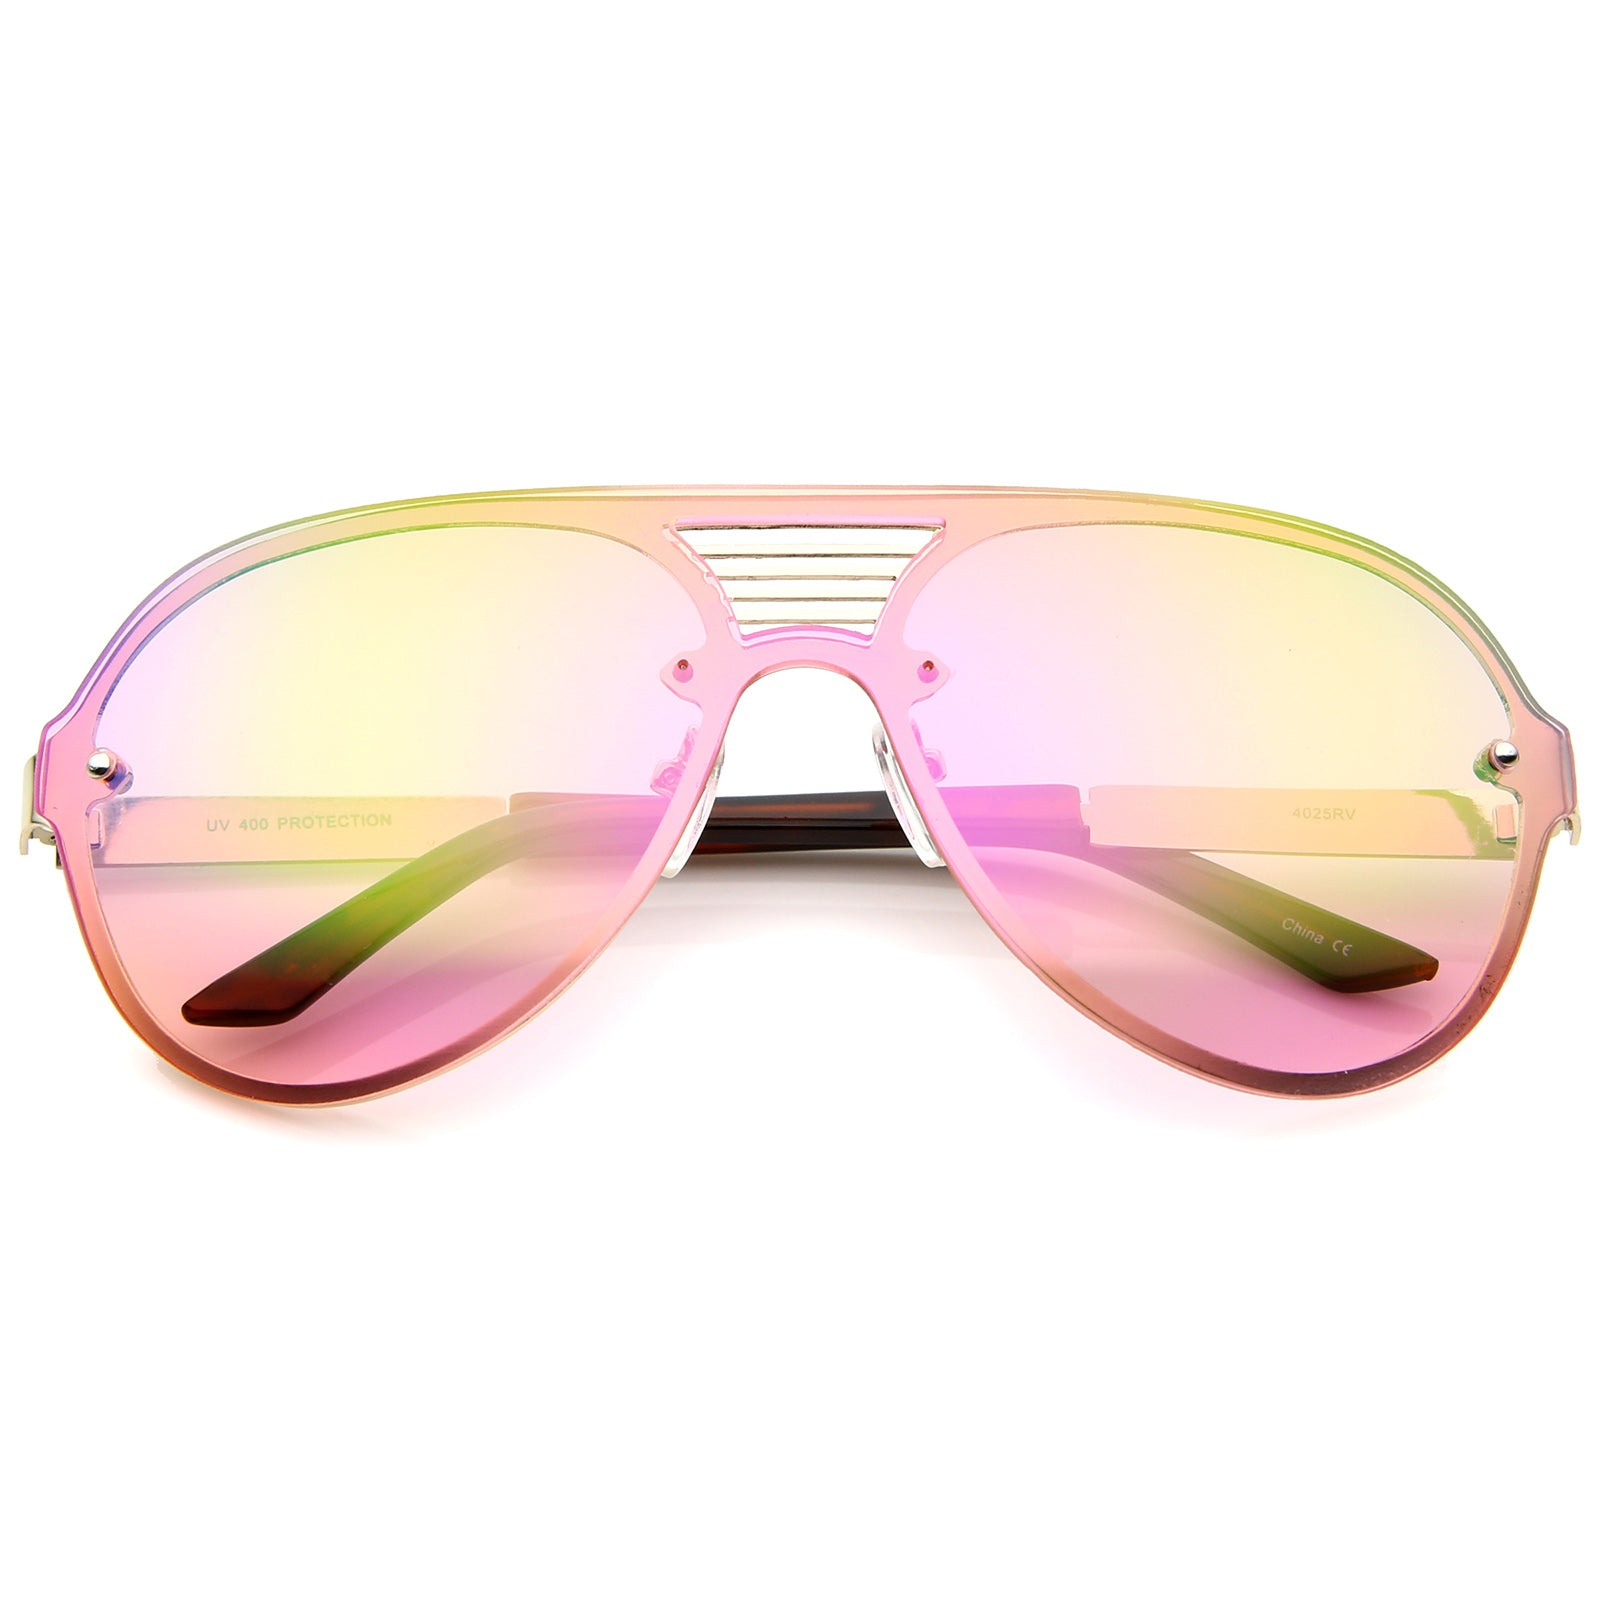 Rimless Flat Top Metal Temple Iridescent Mirror Lens Aviator Sunglasses 59mm - sunglass.la - 8